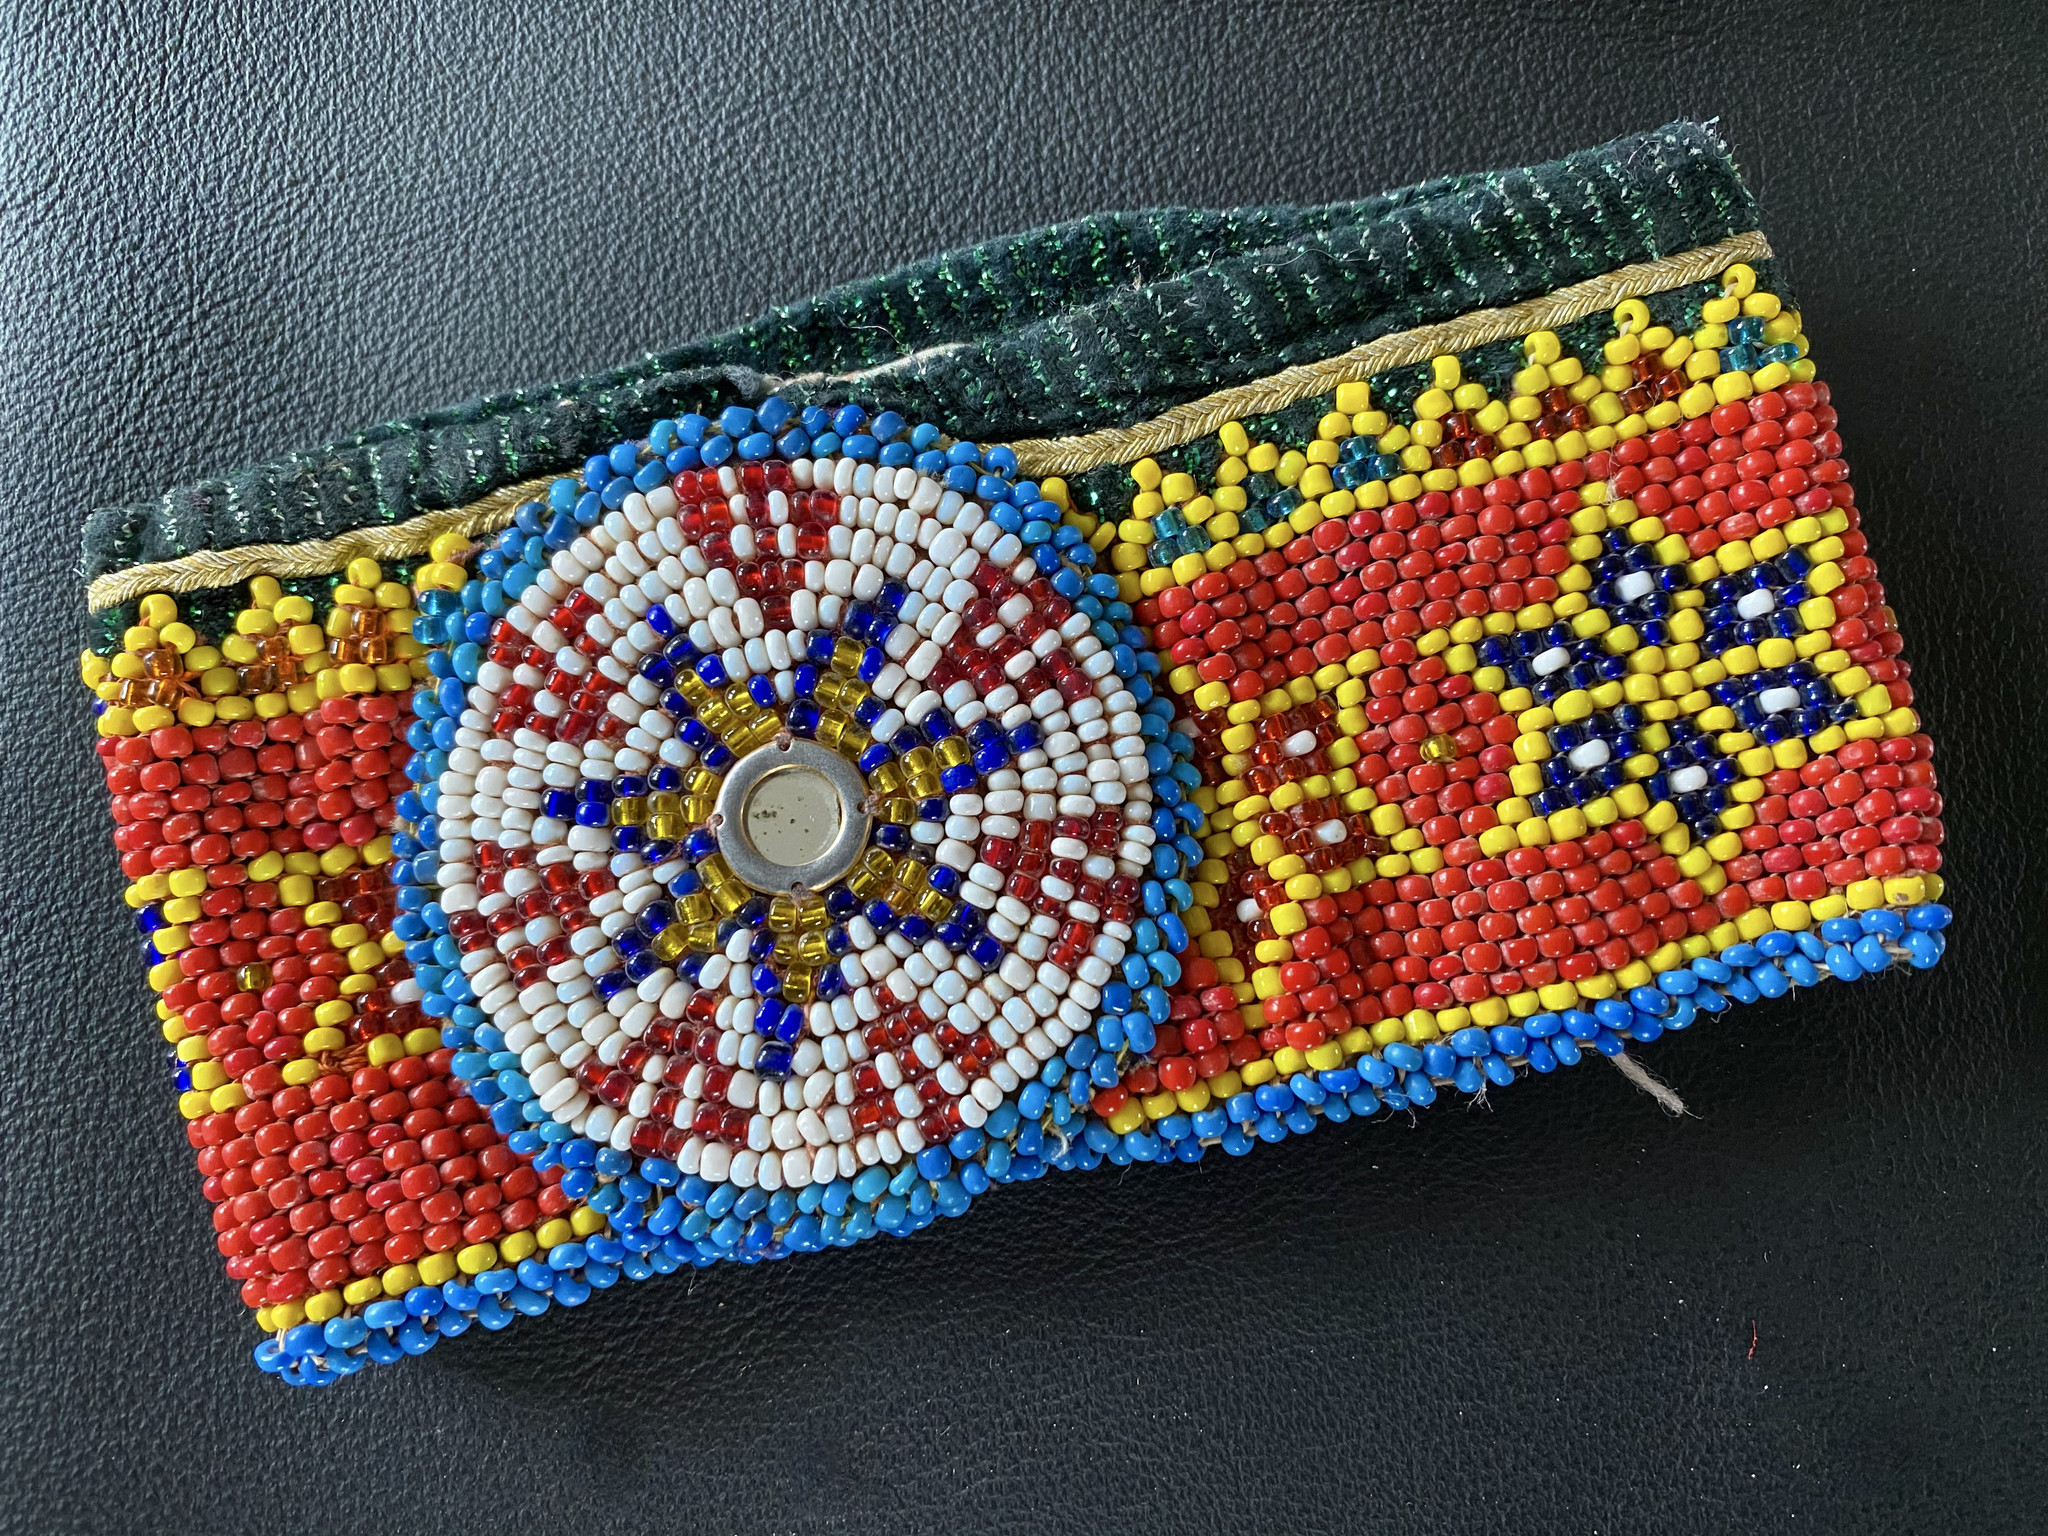 (Ober-) Armband mit Medaillons